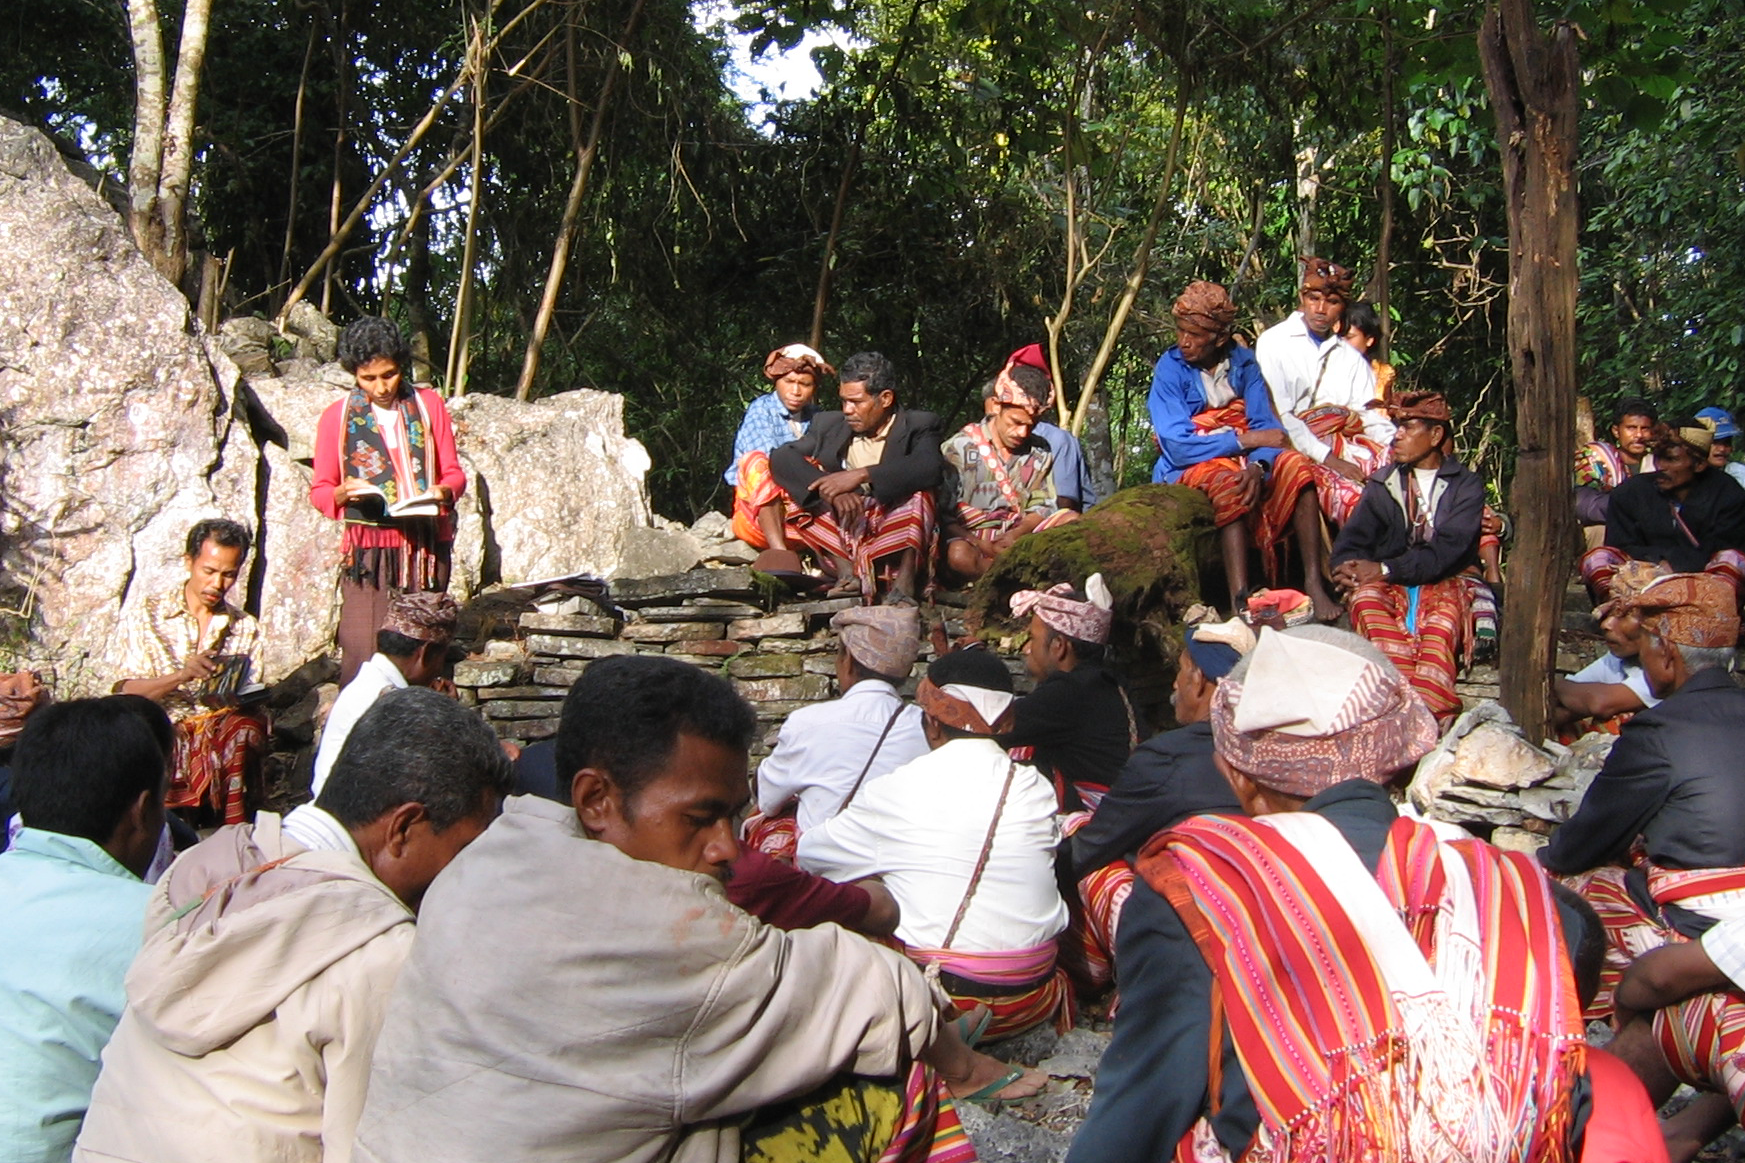 indonesia_john_campbell-nelson_Rev._Paoina_Bara_Pah_leads_prayers_for_protection_of_Bijeli_watershed__South_Central_Timor.png